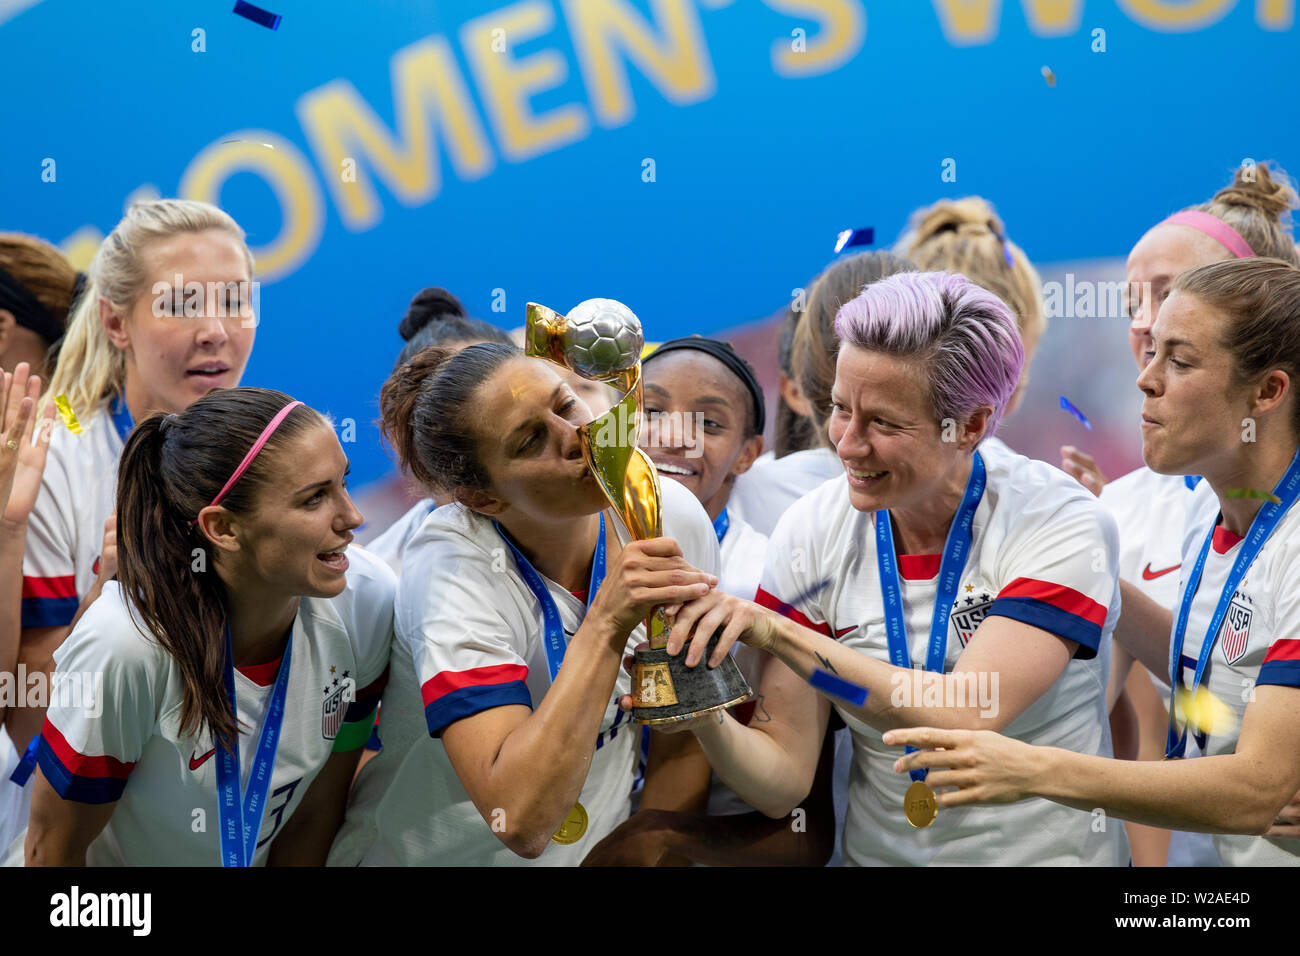 Lyon, France. 07th July, 2019. Megan Rapinoe, Carli Lloyd and Alex Morgan United States sealing commemorates after the United States win the 2019 FIFA Women's W Cup Cup Final, against Holland, held at the Lyon Stadium in Lyon, France. Credit: Foto Arena LTDA/Alamy Live News - Stock Image